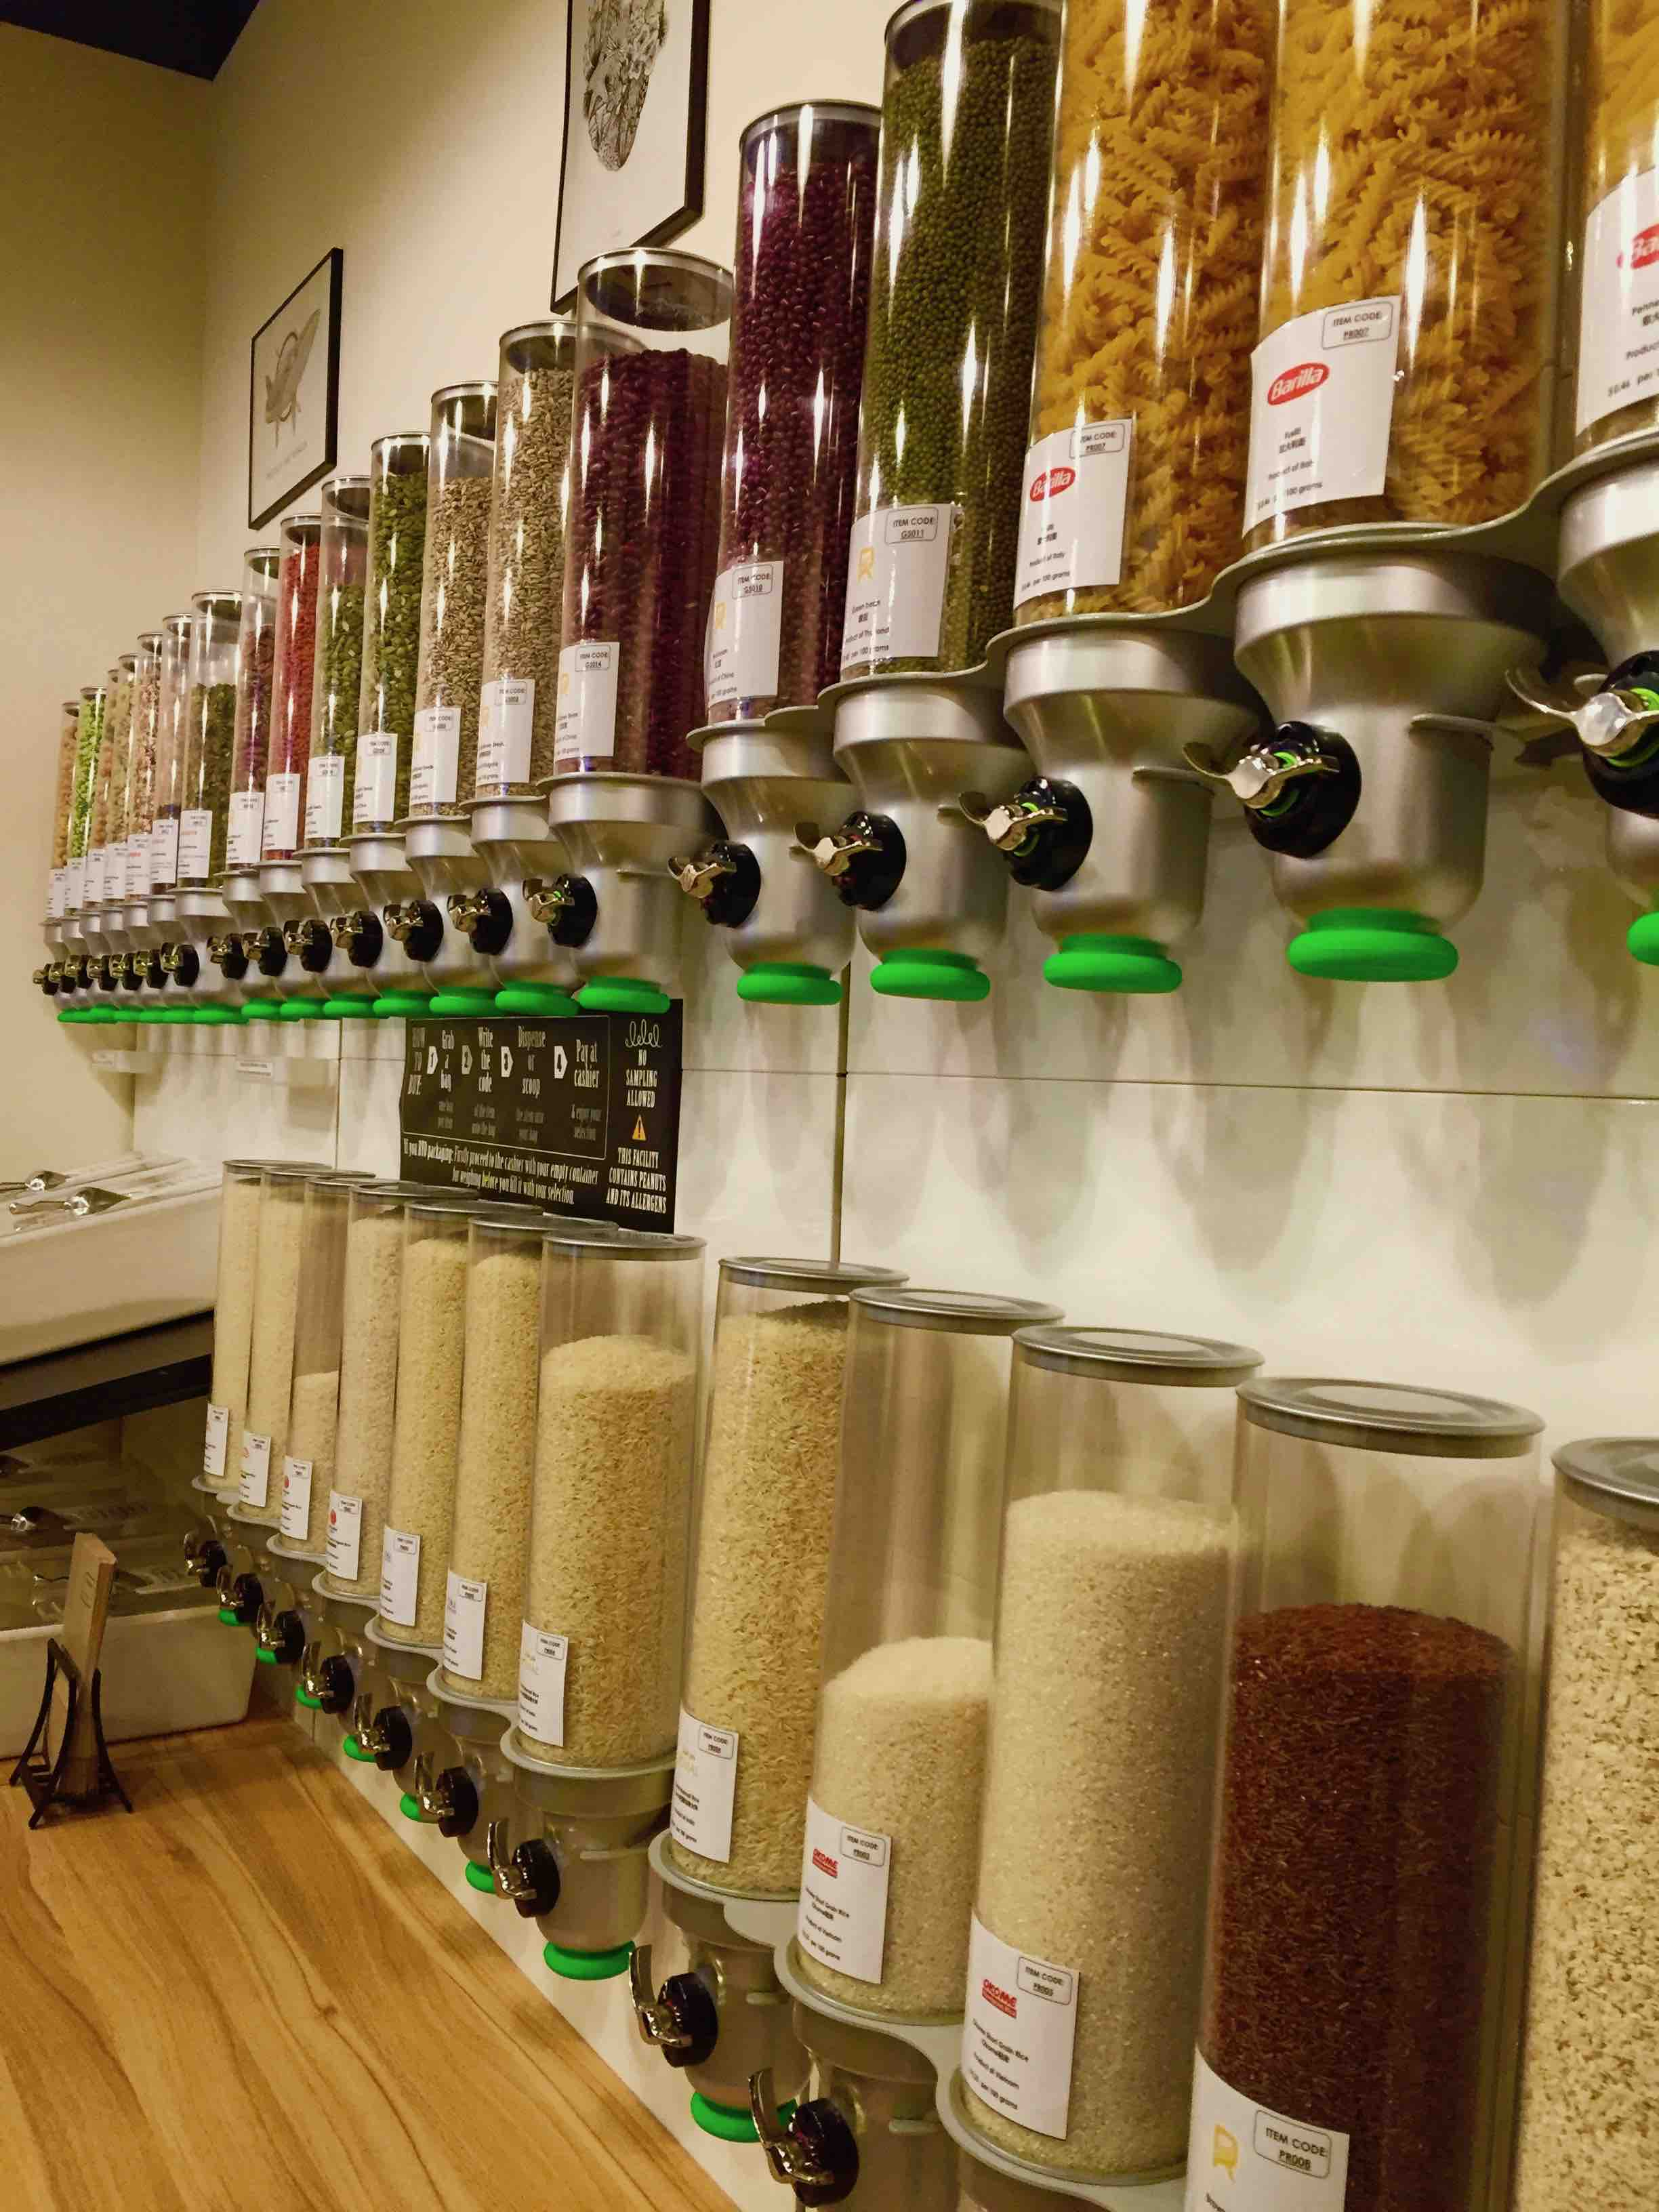 Packaging free dry goods at Reprovisions, a zero waste store in Singapore